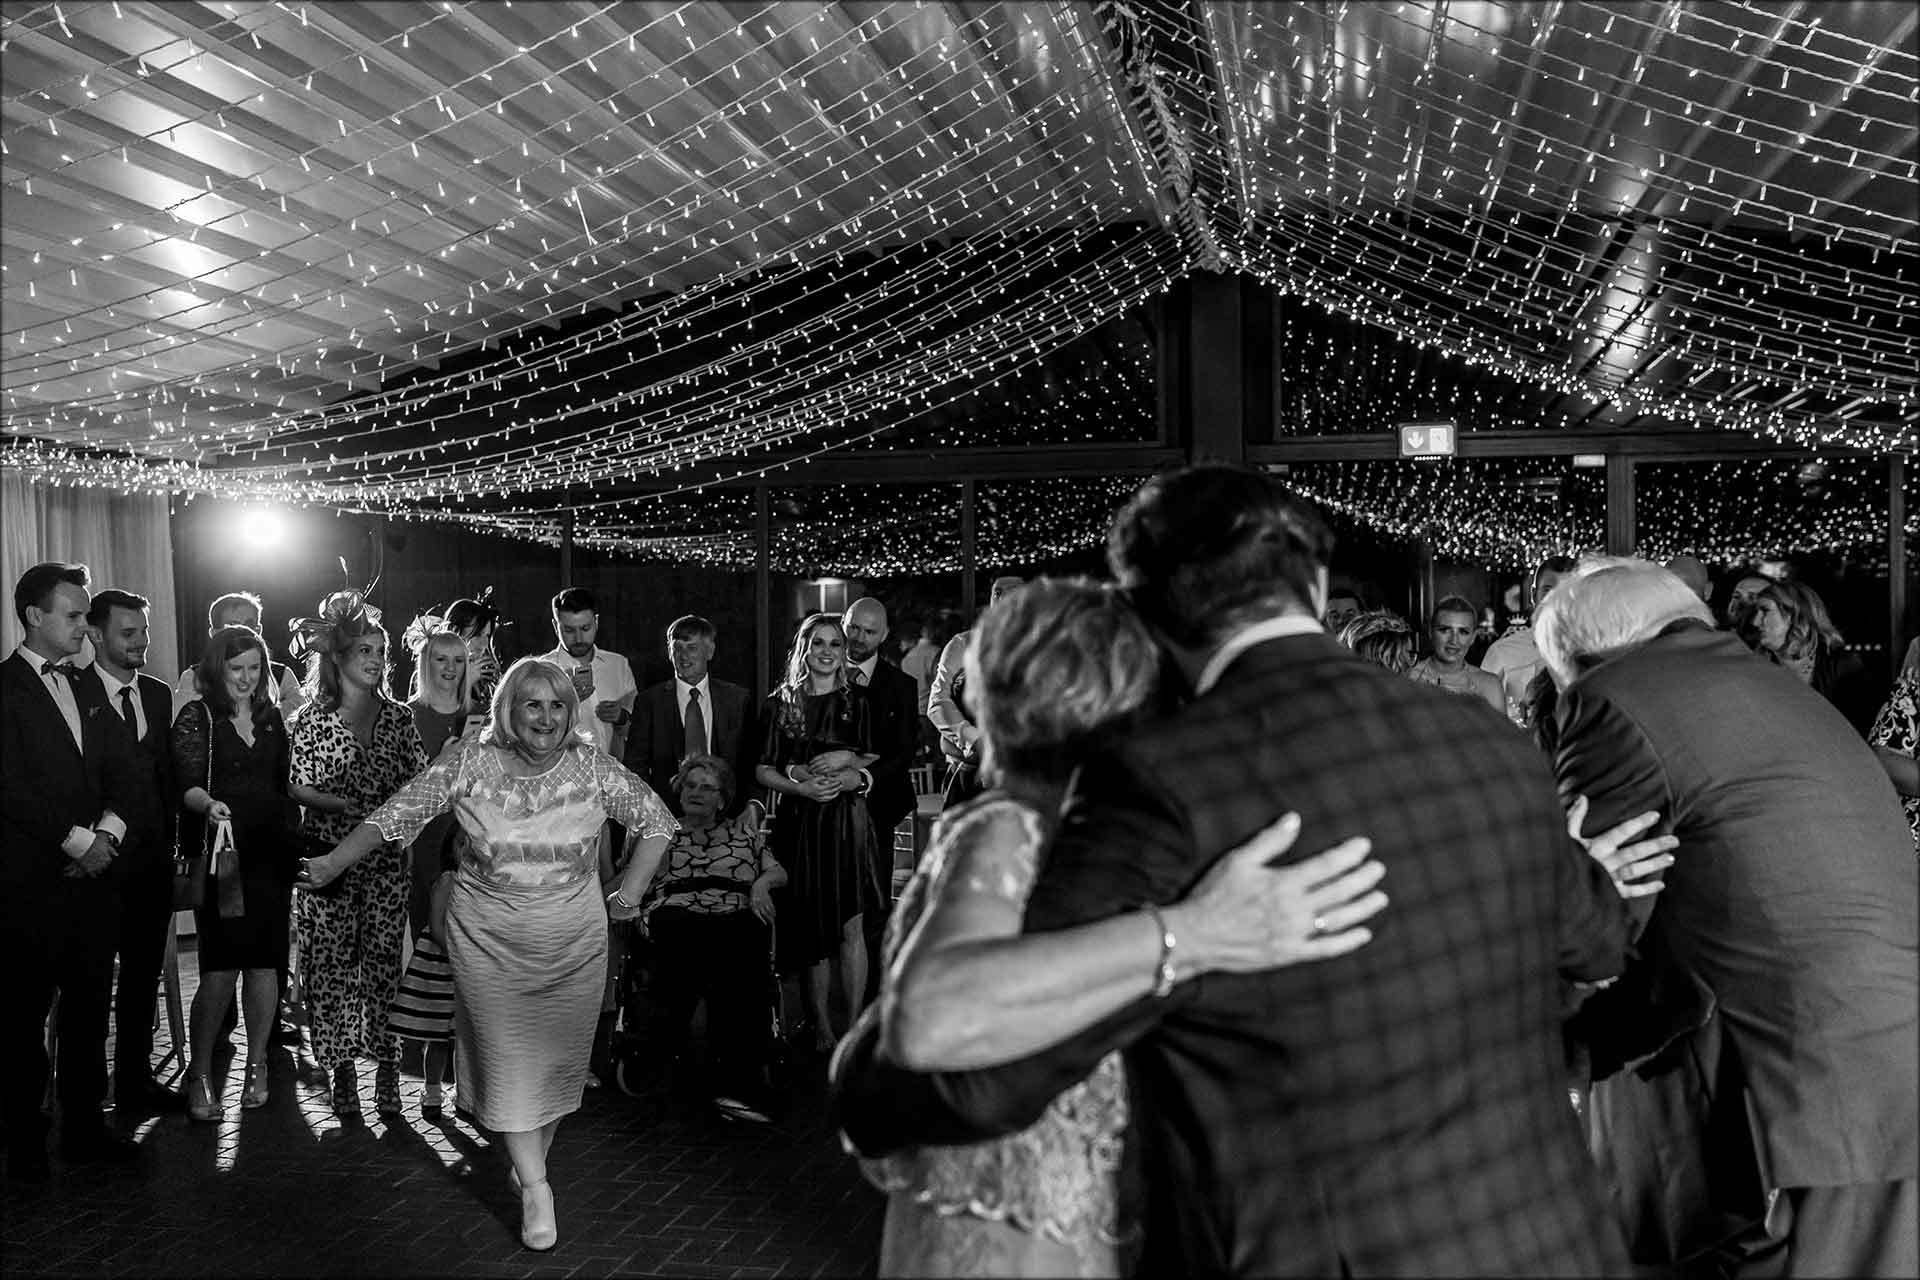 mum joins the bride and groom on the dancefloor